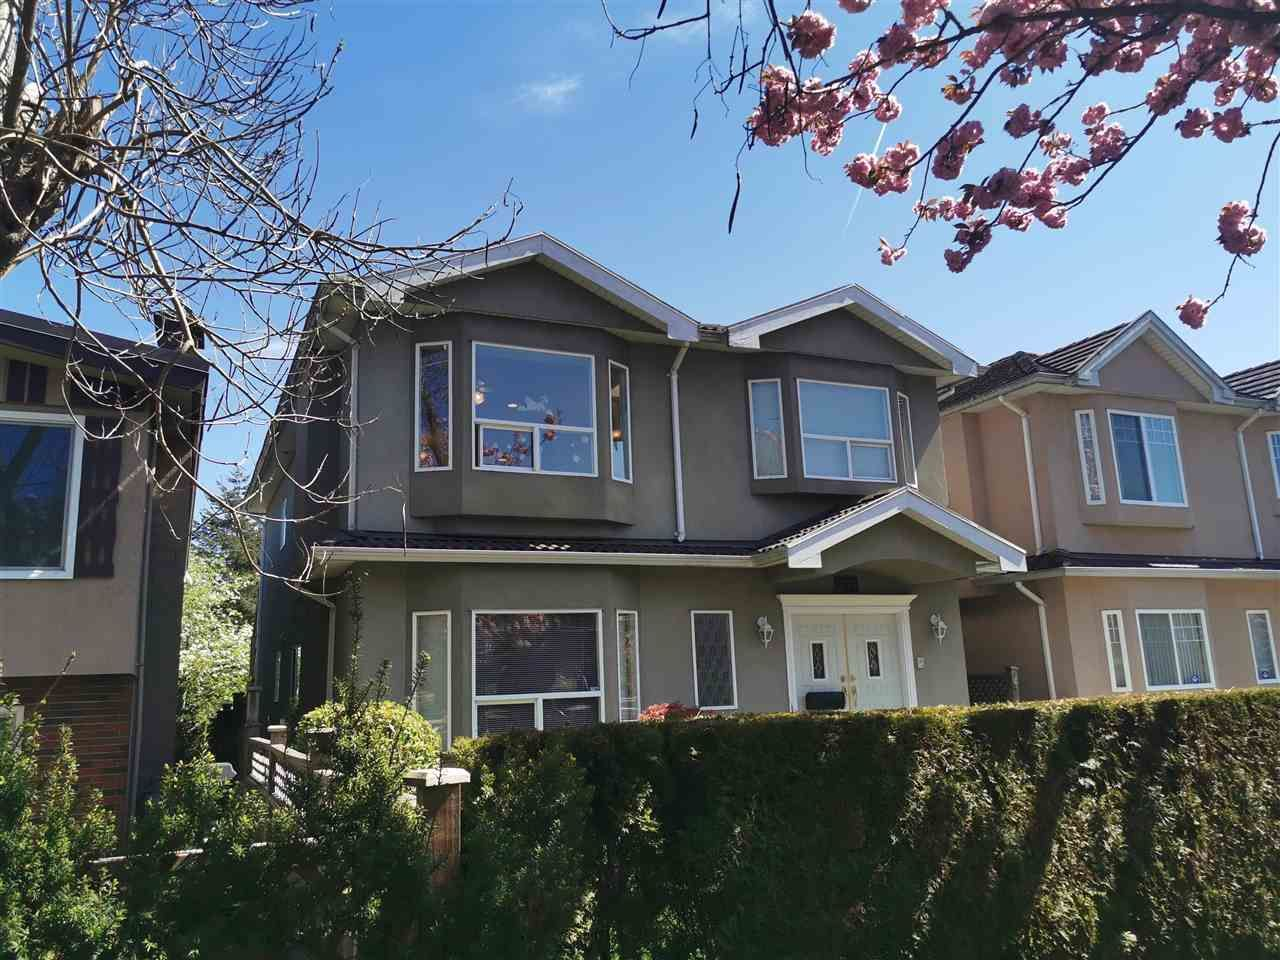 Main Photo: 5774 ARGYLE Street in Vancouver: Killarney VE House for sale (Vancouver East)  : MLS®# R2585928